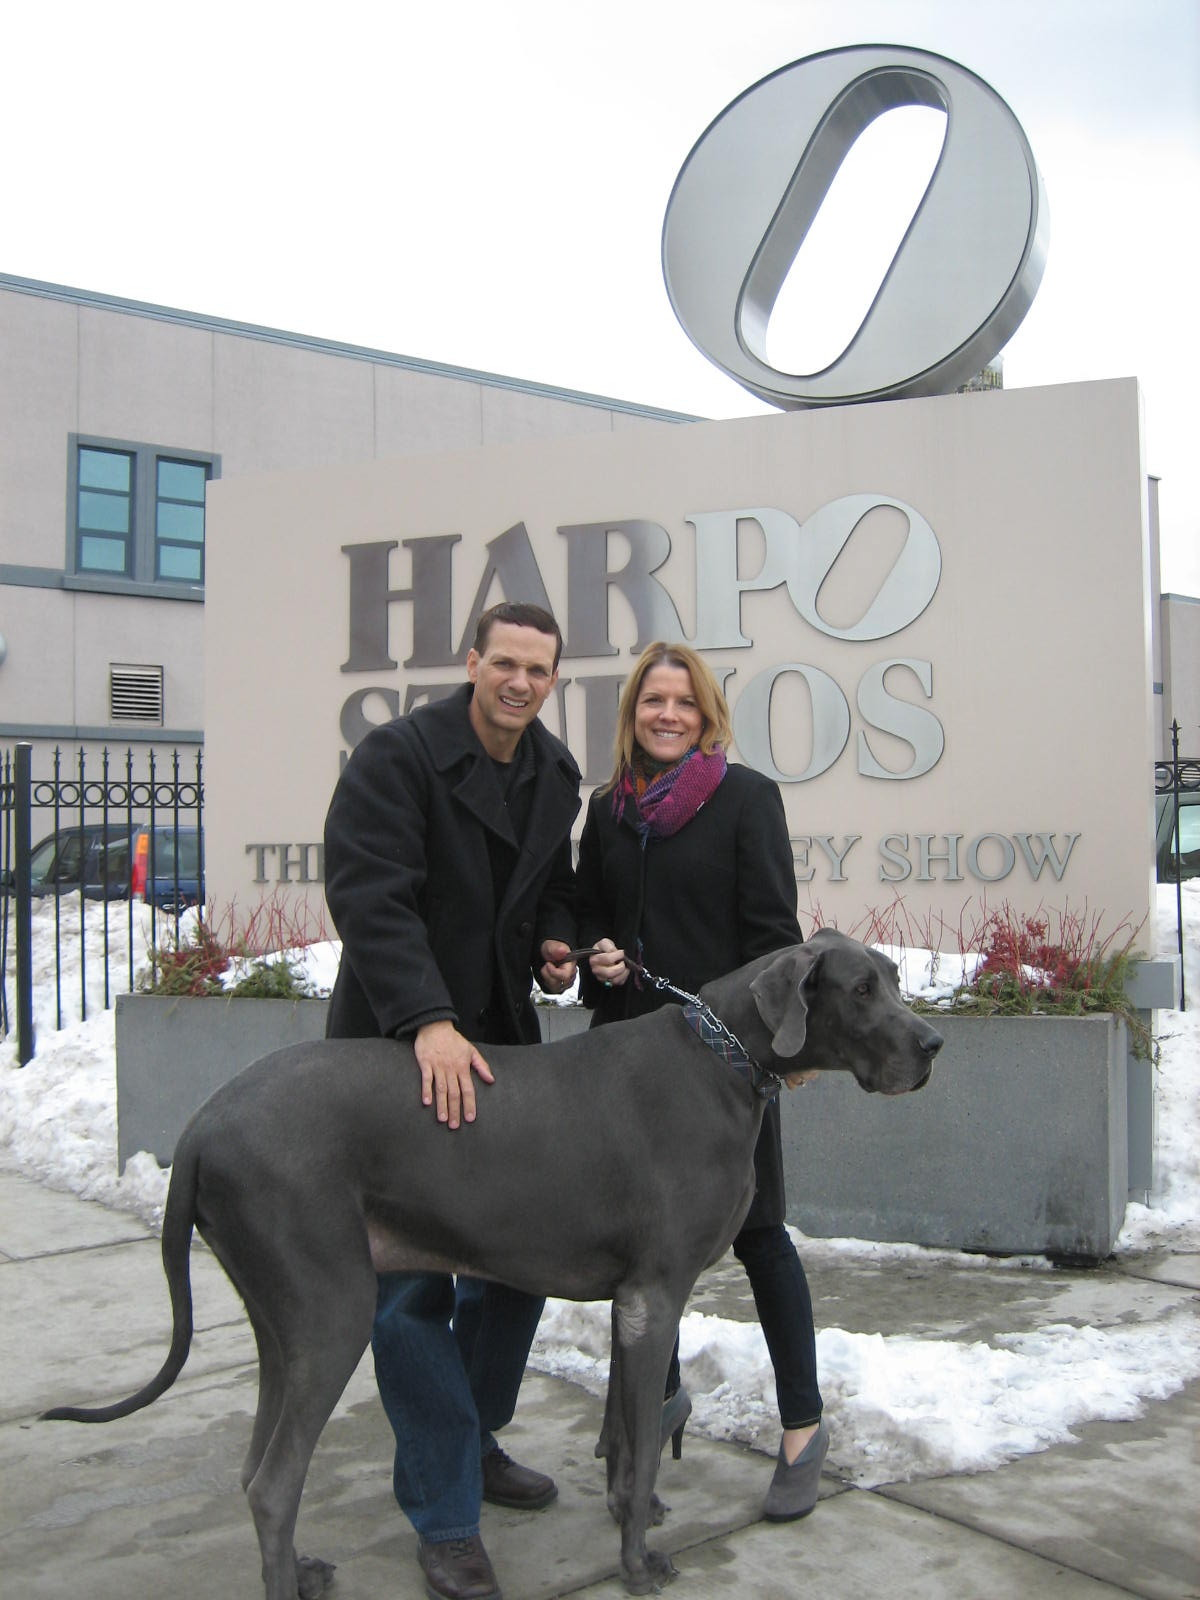 George standing out in front of the Harpo/Oprah Studios after the interview.